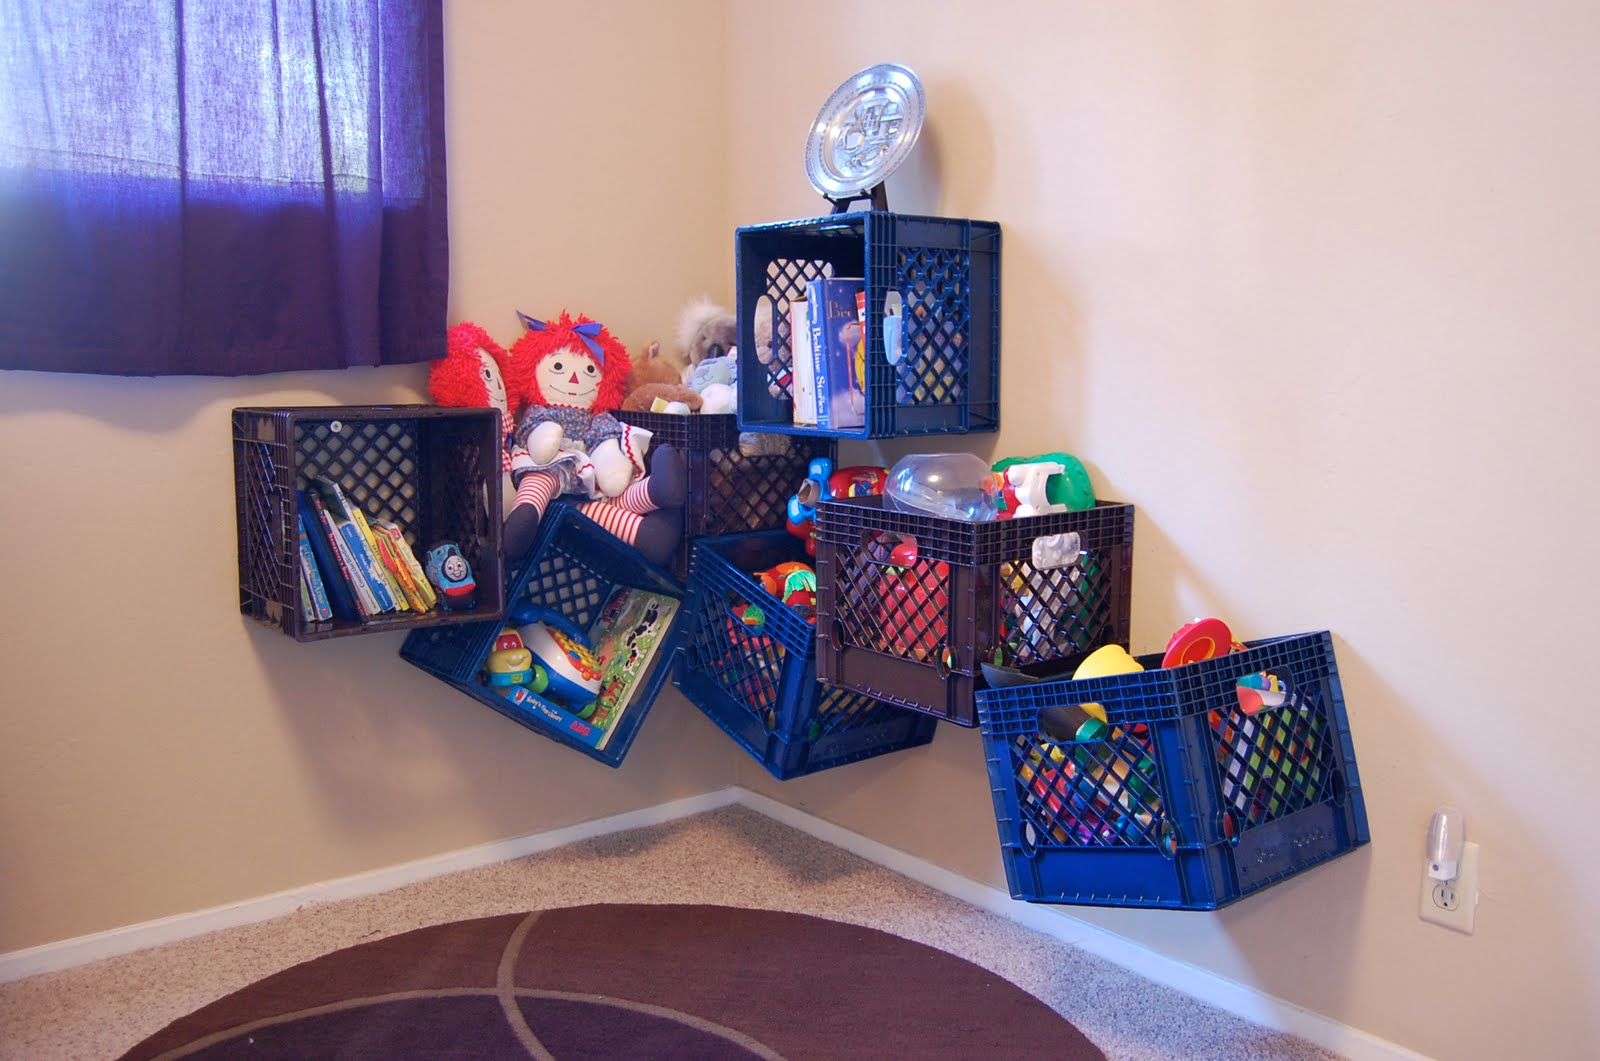 Blue plastic crates attached to the wall with toys and books in them